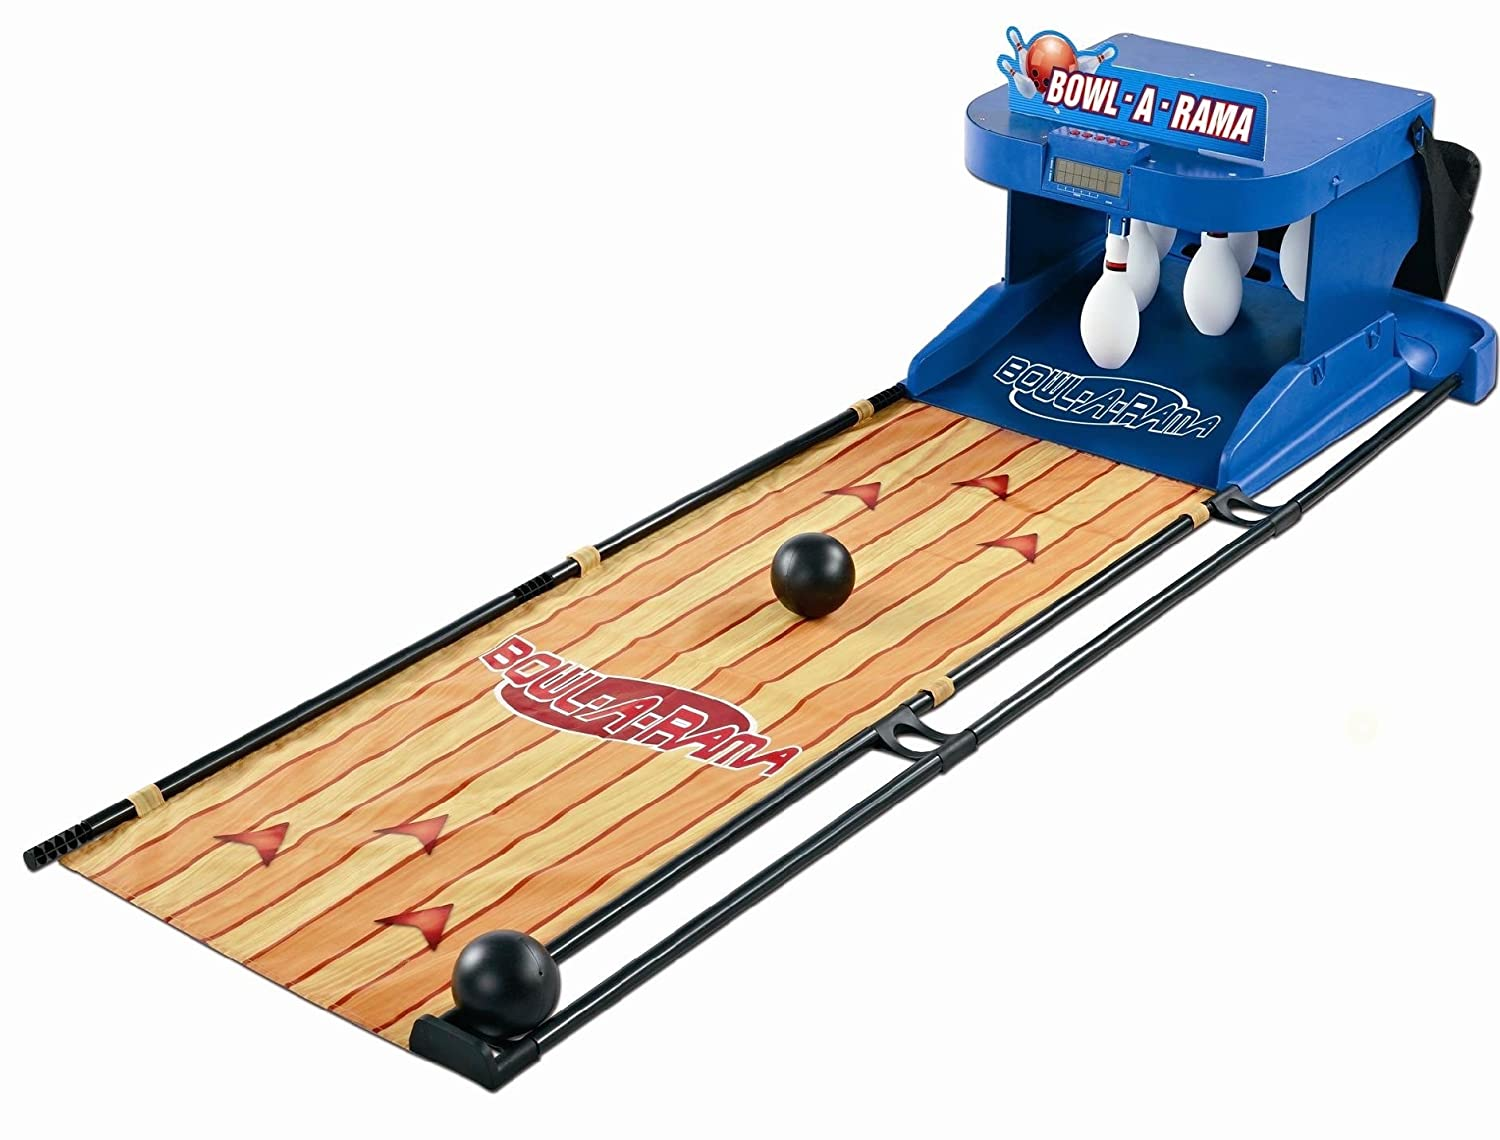 Amazon.com: Sportcraft Bowl-A-Rama Bowler Bowling Arcade Game ...